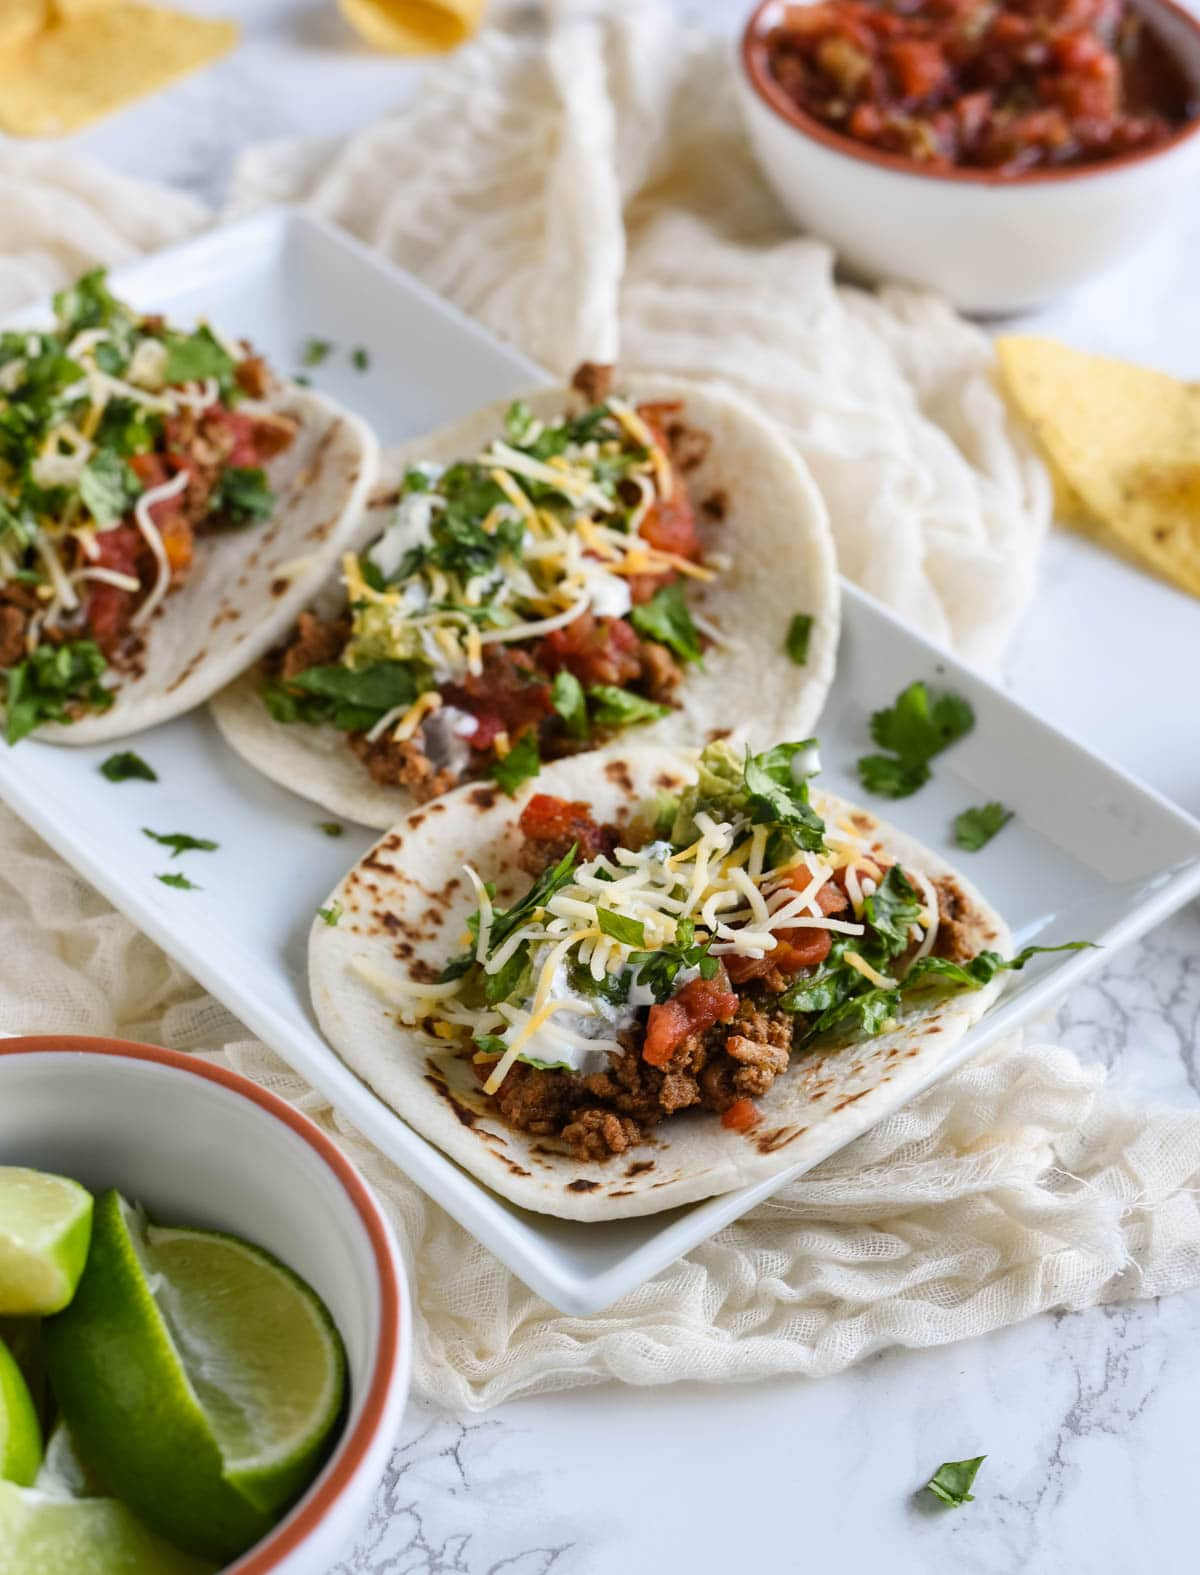 Healthy turkey tacos recipe that's loaded with peppers, spices and comes together in half hour or less! We eat this all the time - its simply the best!